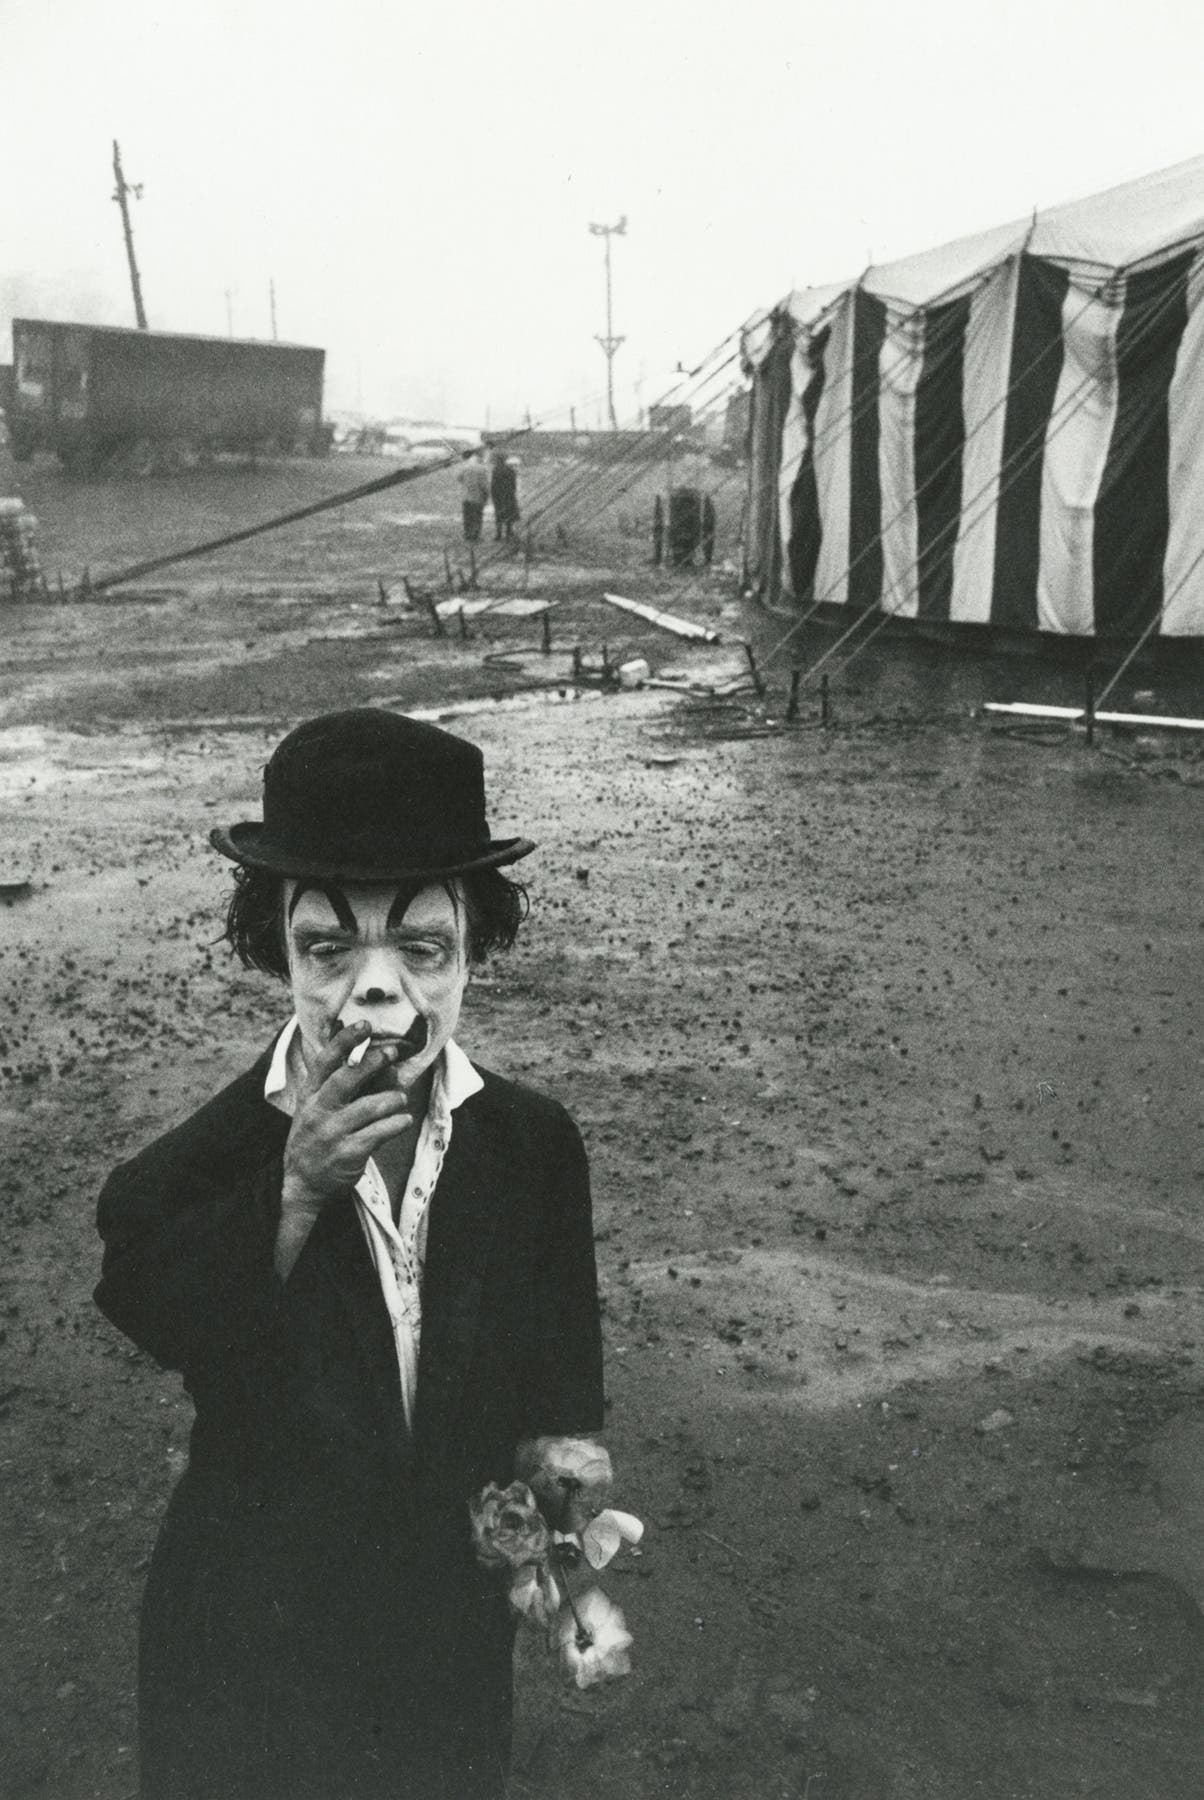 """SUBJECT: CONTACT"" Exhibit to Showcase Four Iconic Bruce Davidson Projects"